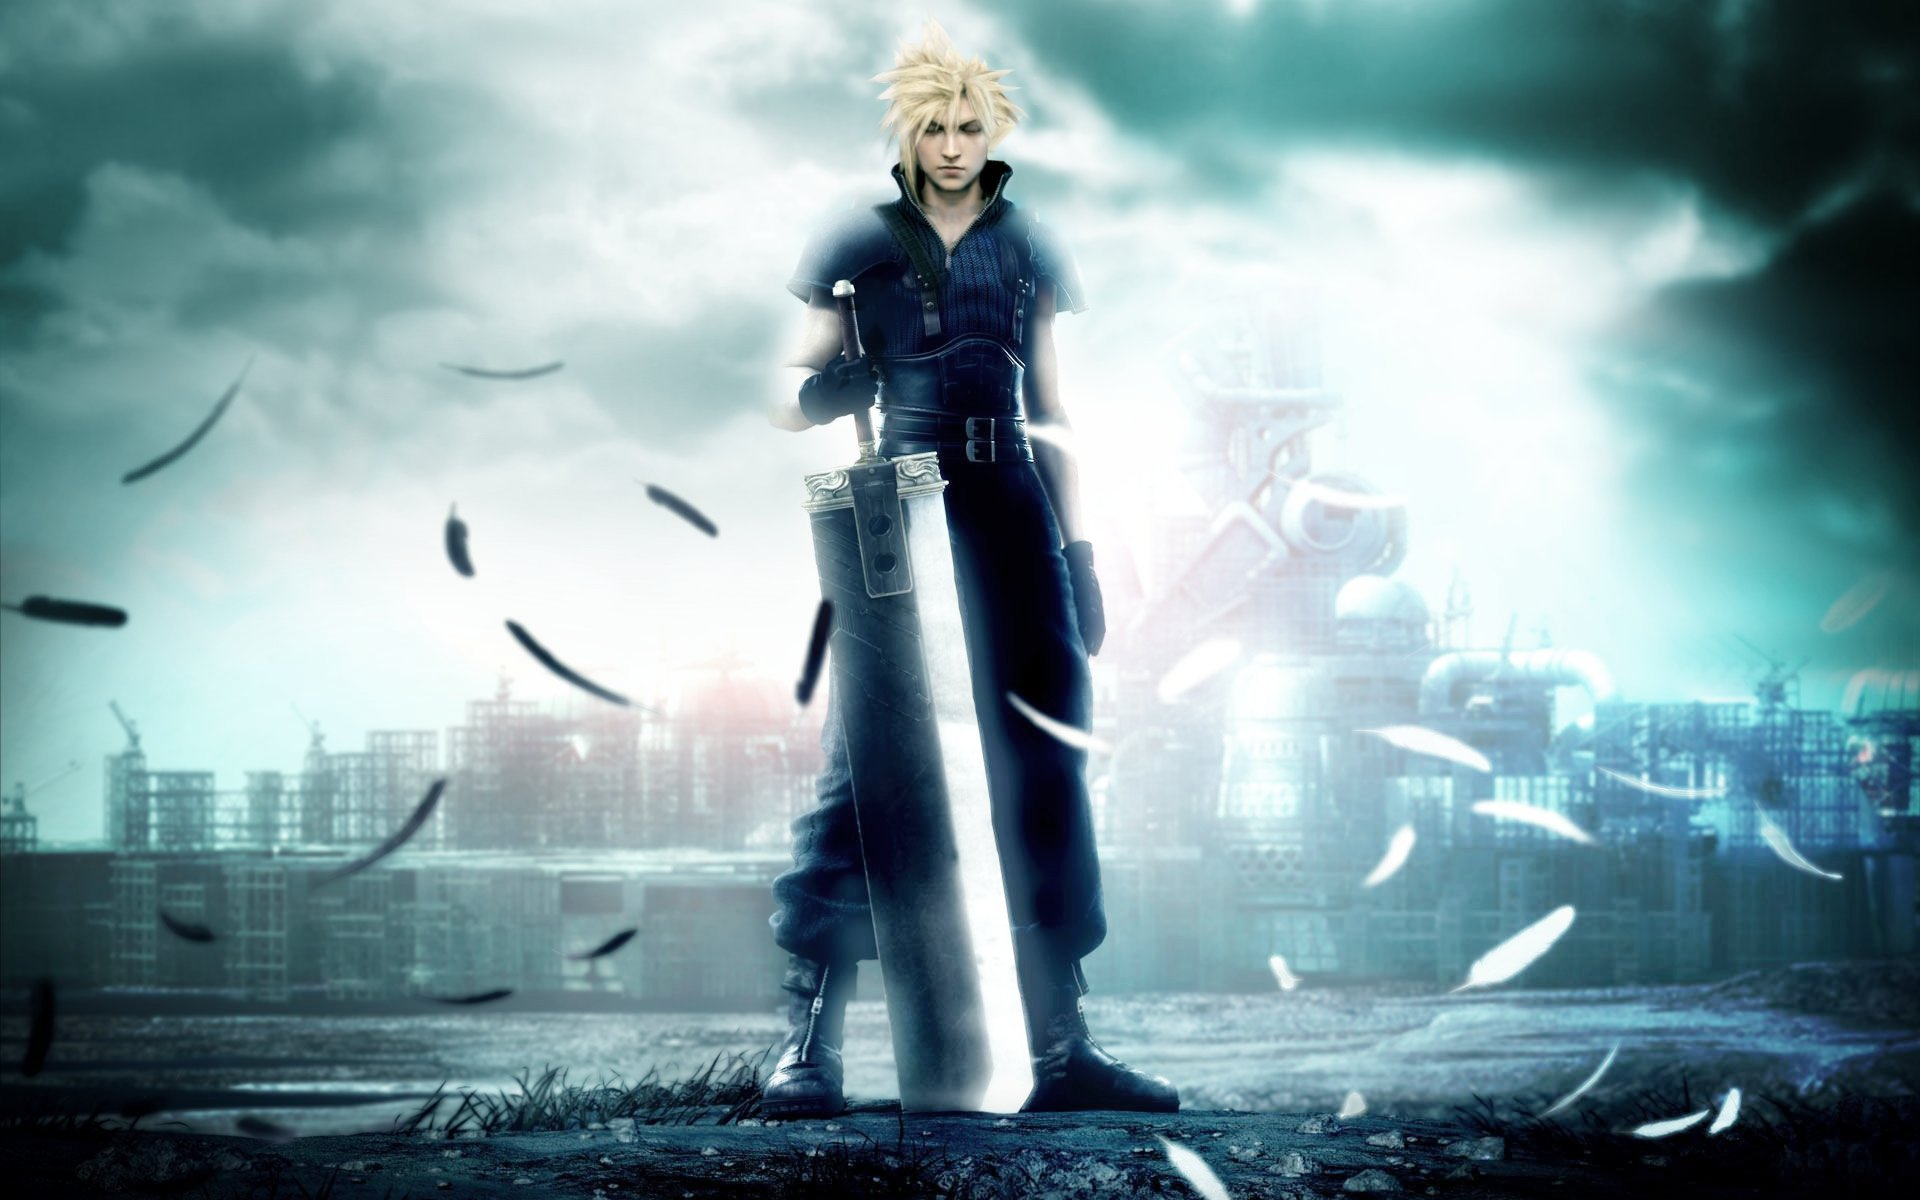 Anime Wallpapers Final Fantasy HD 4K Download For Mobile iPhone & PC